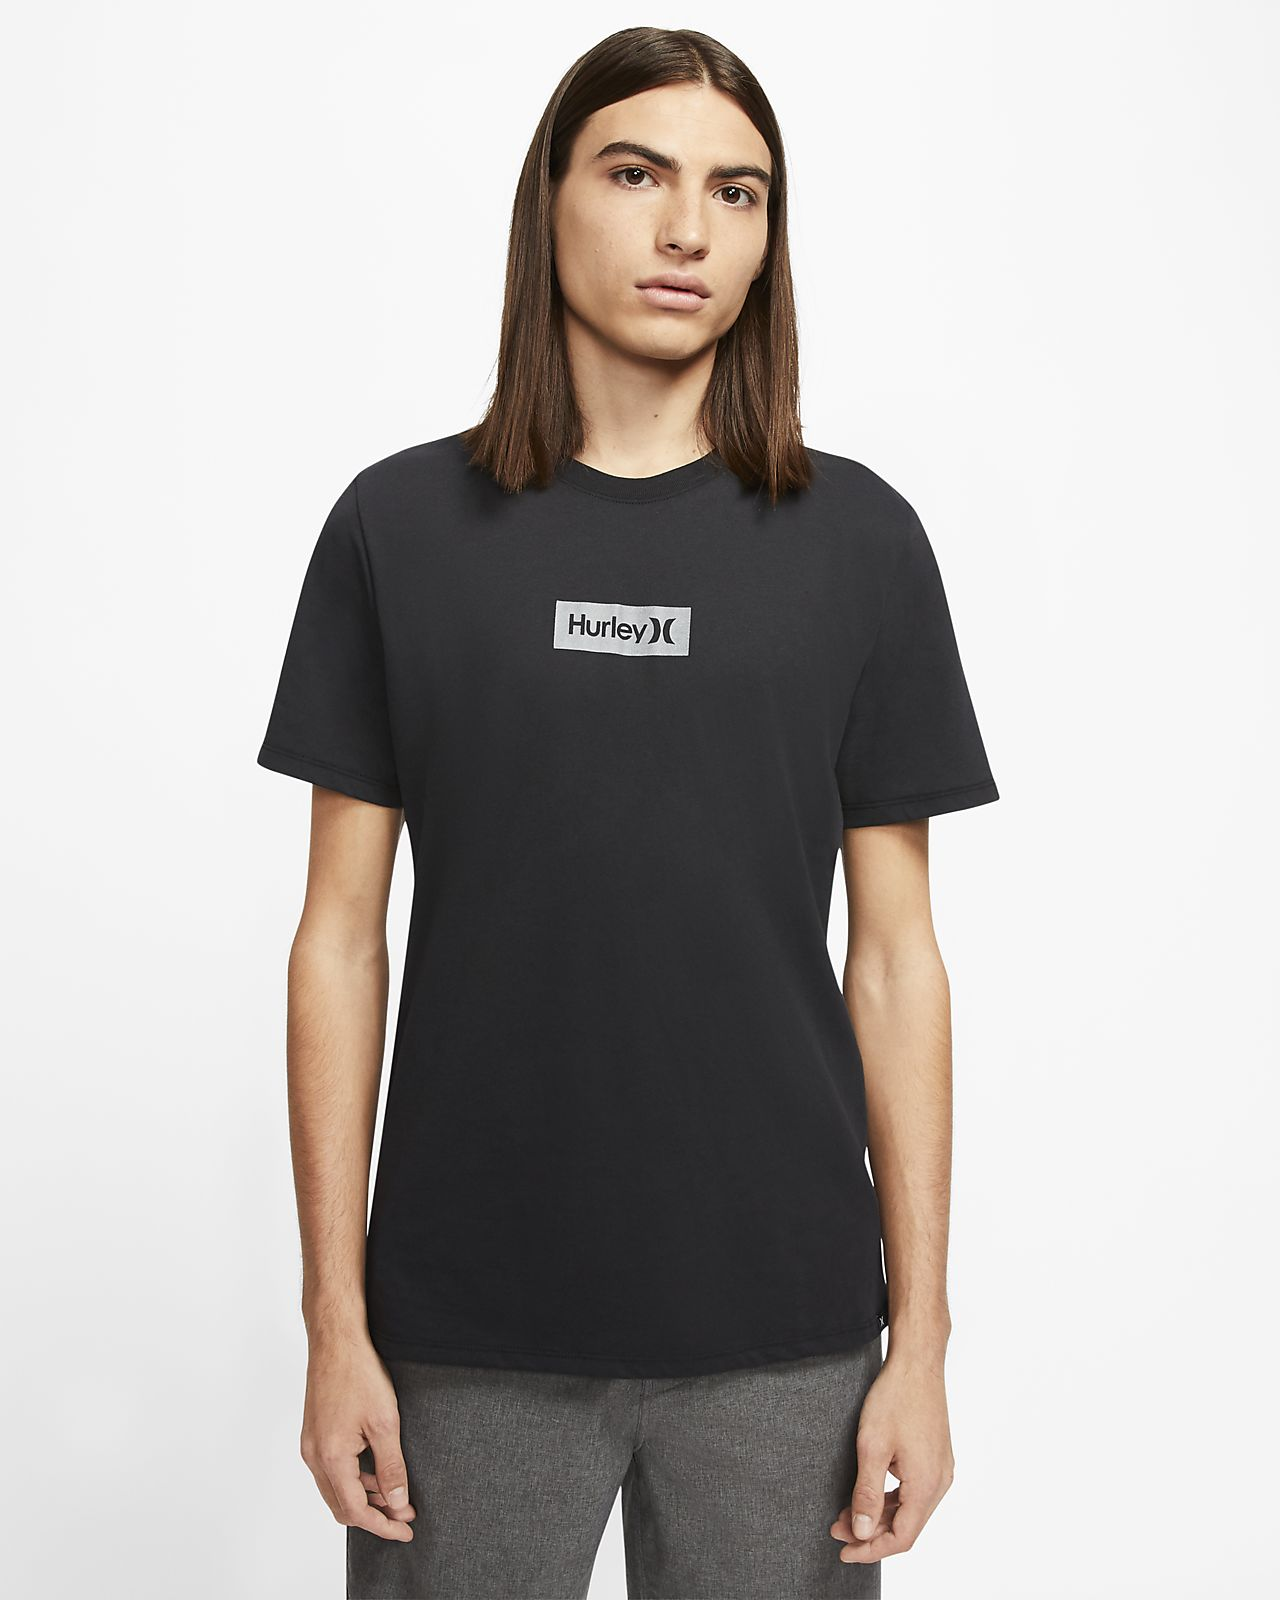 Hurley Dri-FIT One And Only Small Box Reflective Herren-T-Shirt